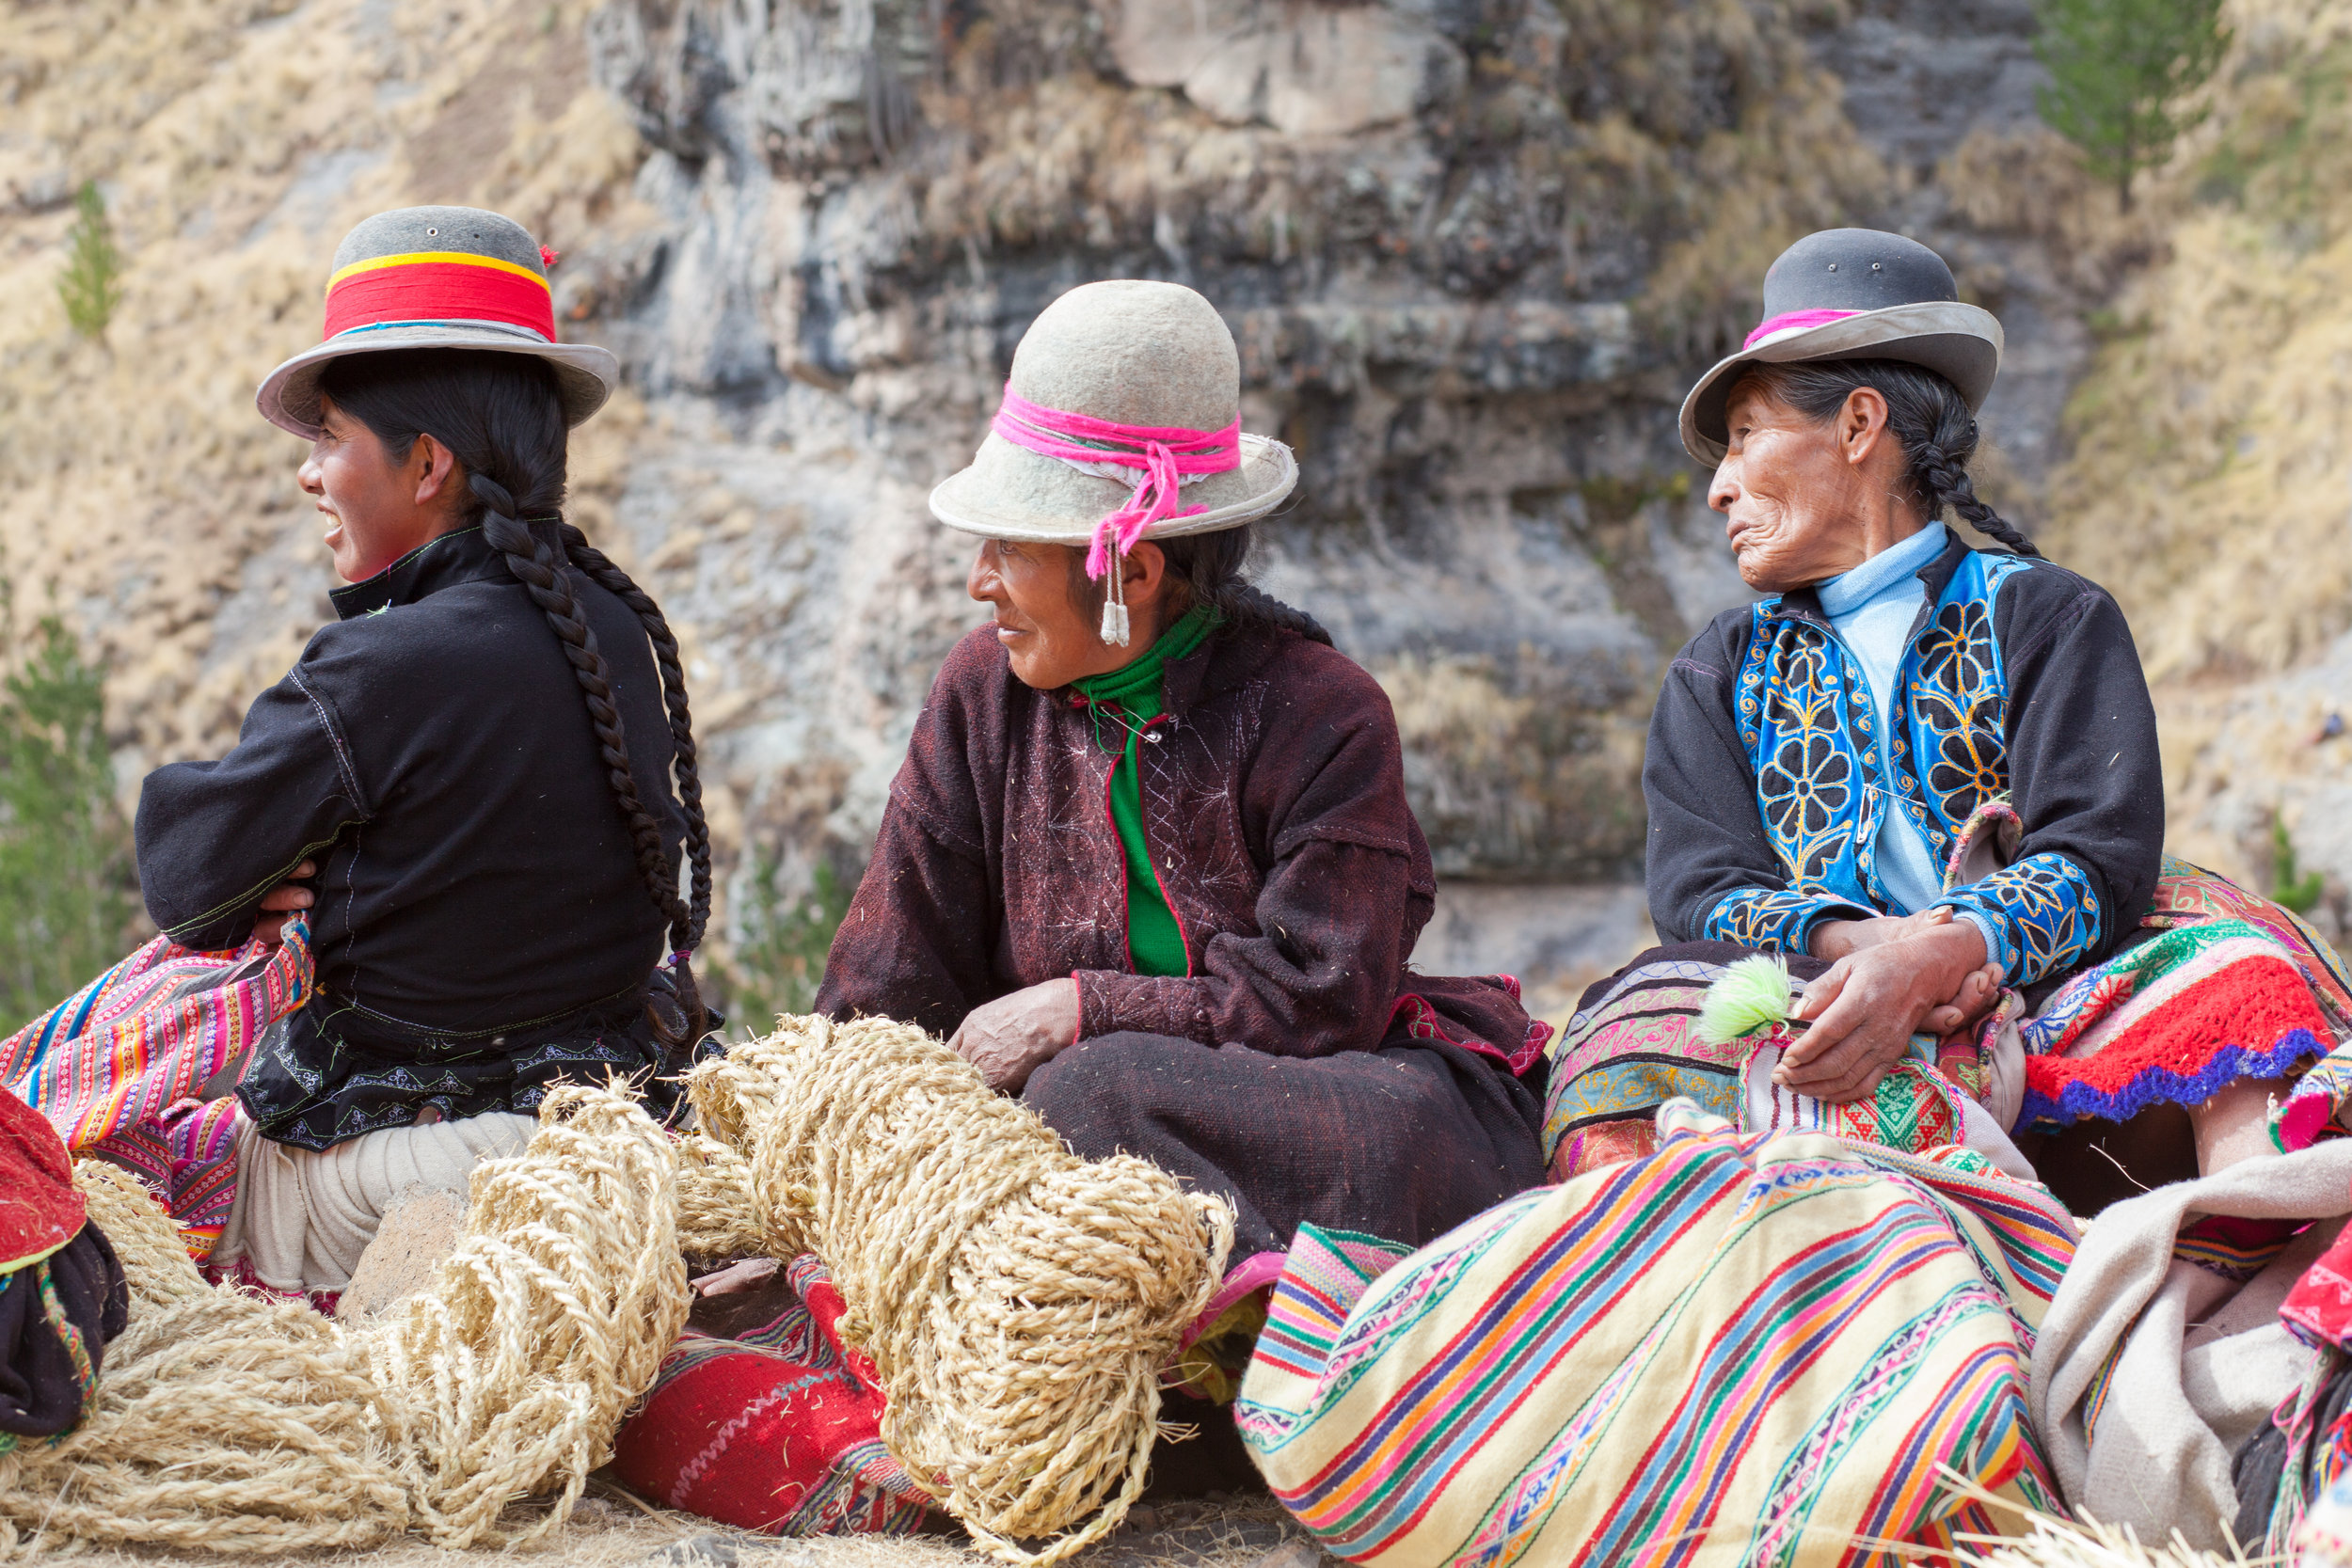 Peruvian travel photography by Geraint Rowland.